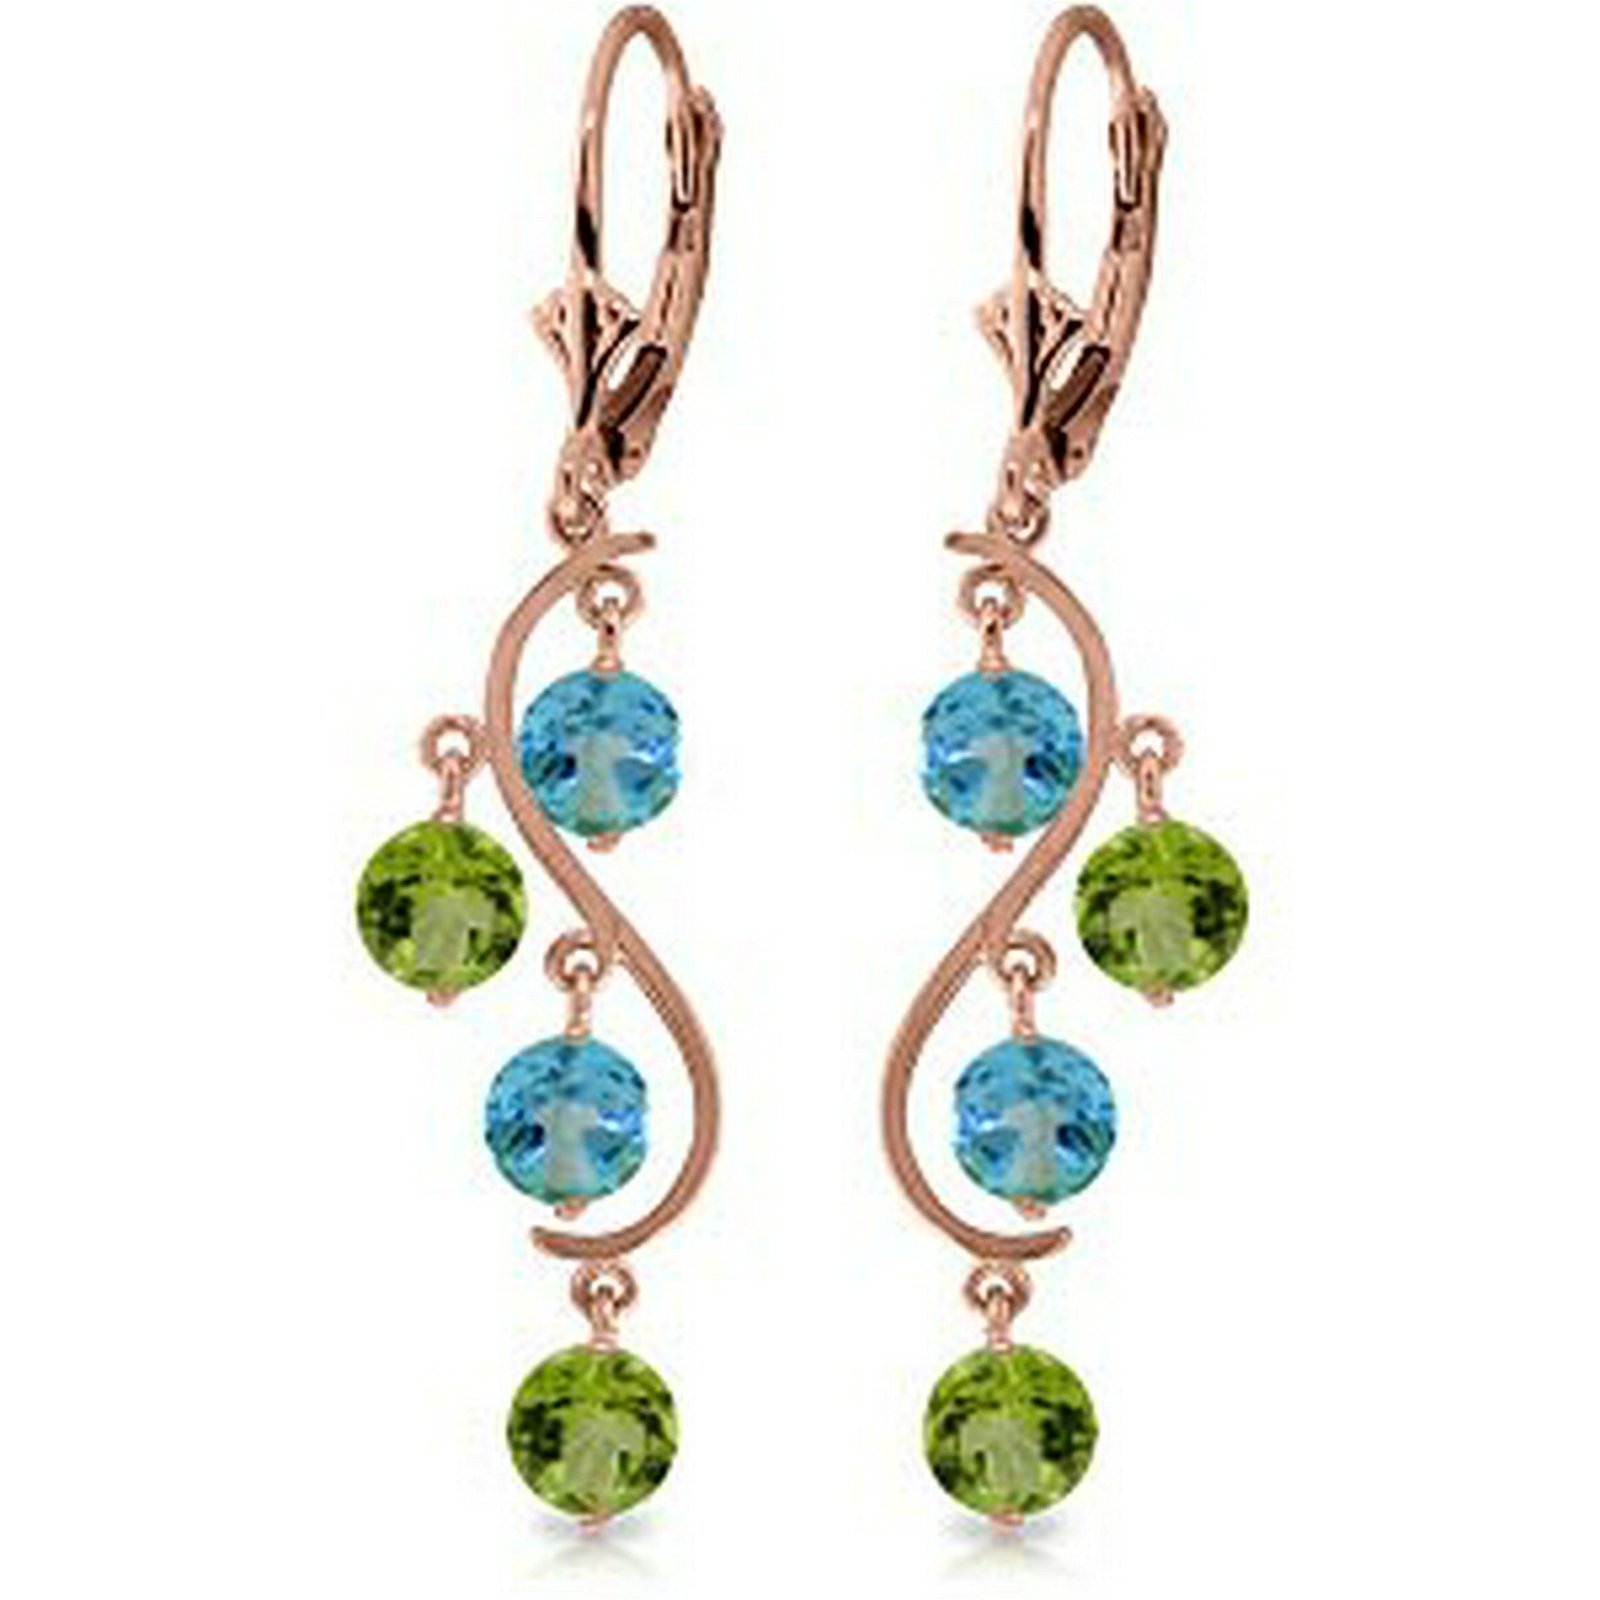 4.94 Carat 14K Solid Rose Gold Chandelier Earrings Blue